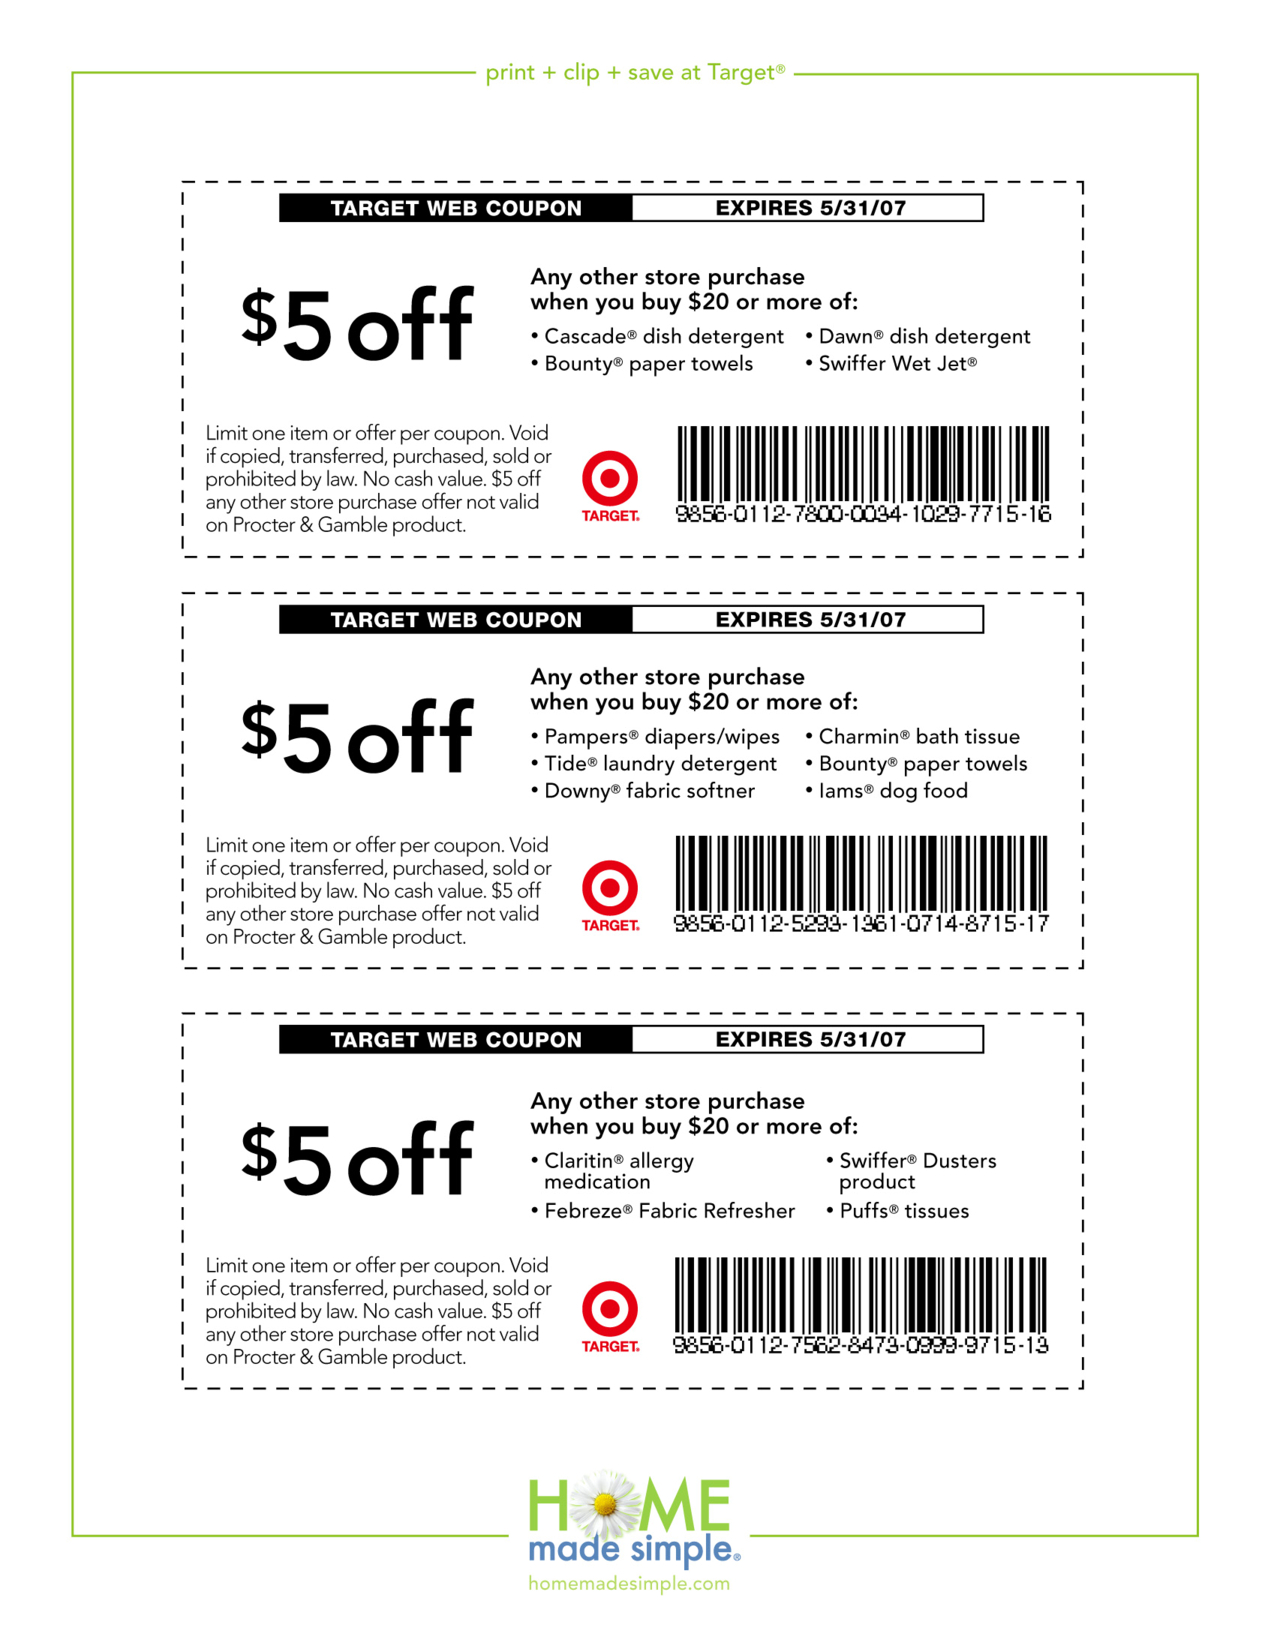 5-Off-Free-Printable-Coupons-Target - Free Printable Coupons 2017